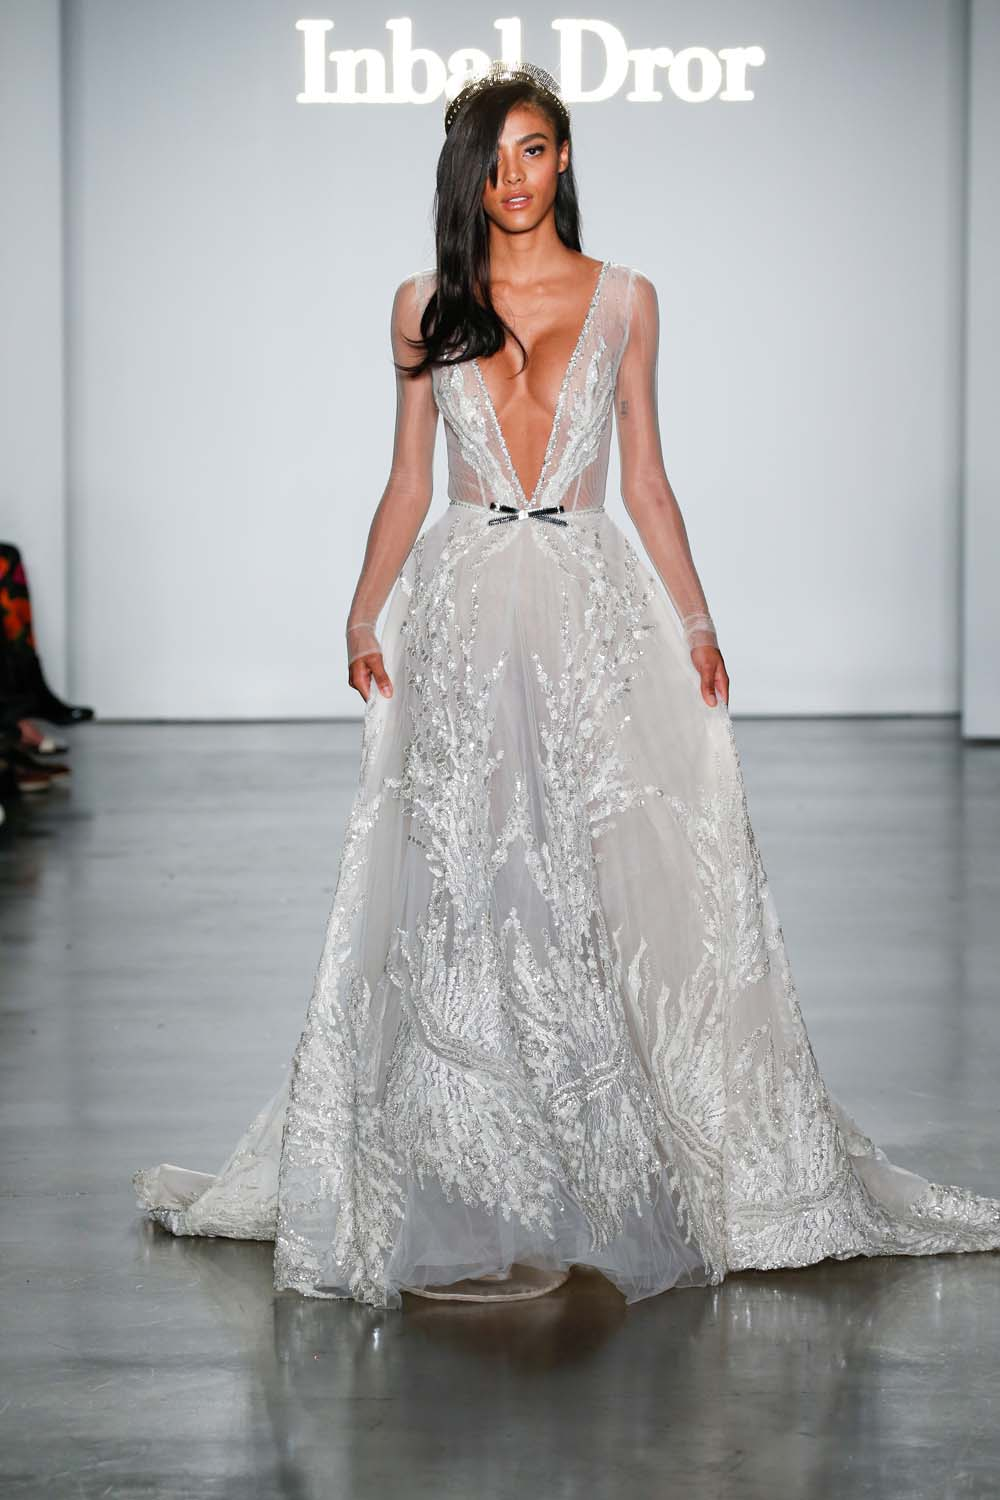 Inbal Dror Fall 2020 Wedding Dresses